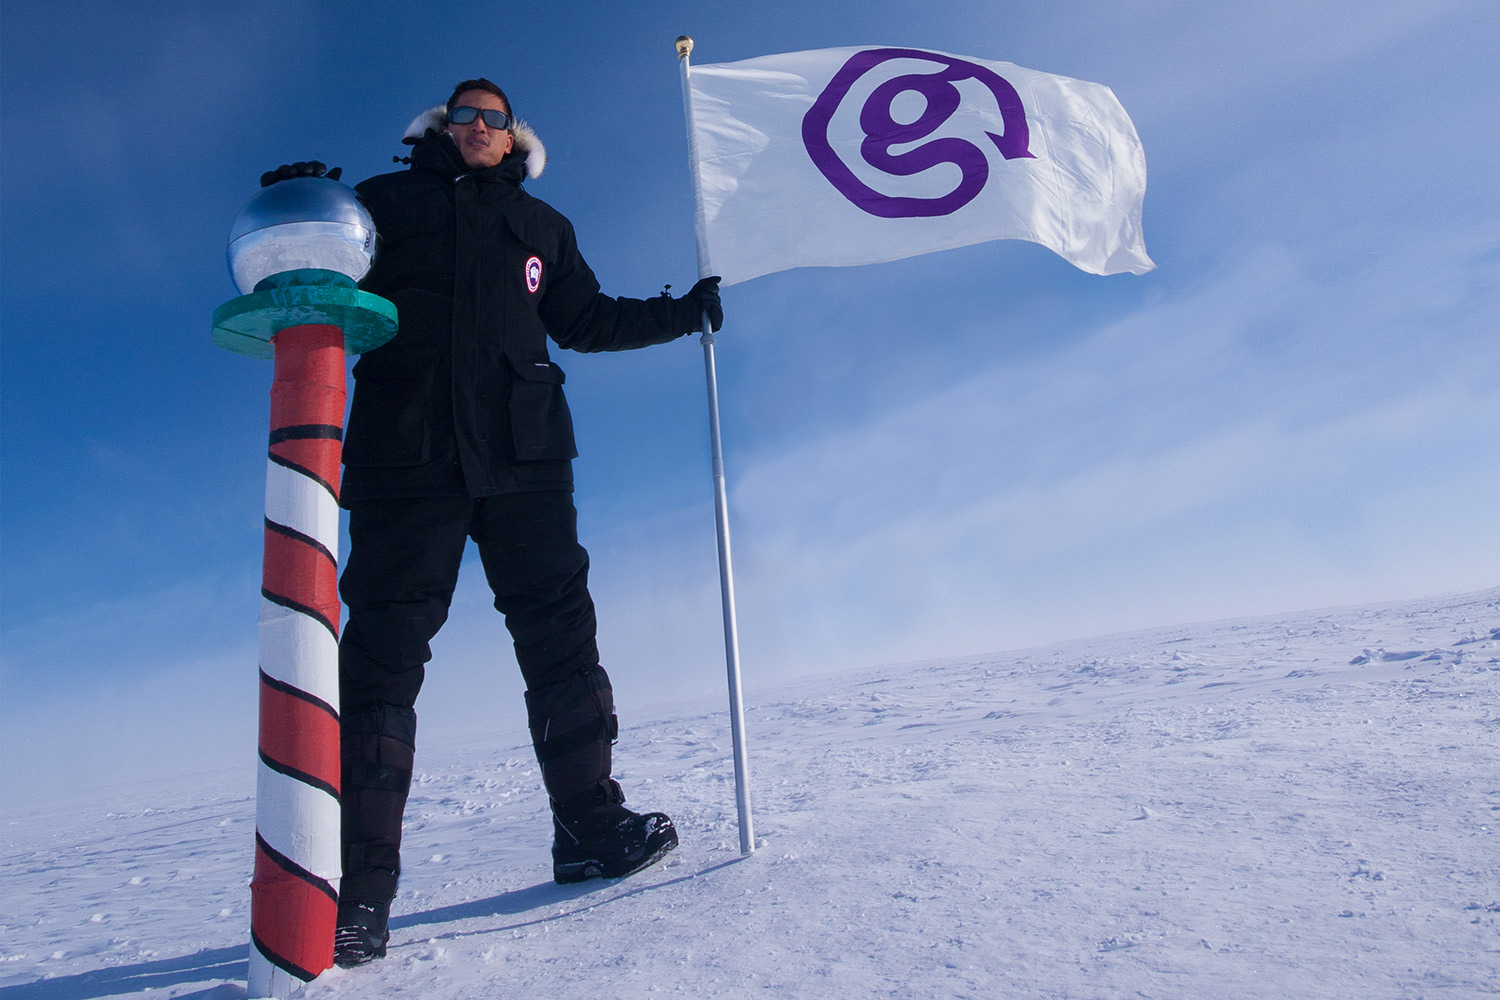 Bruce Poon Tip (south pole)